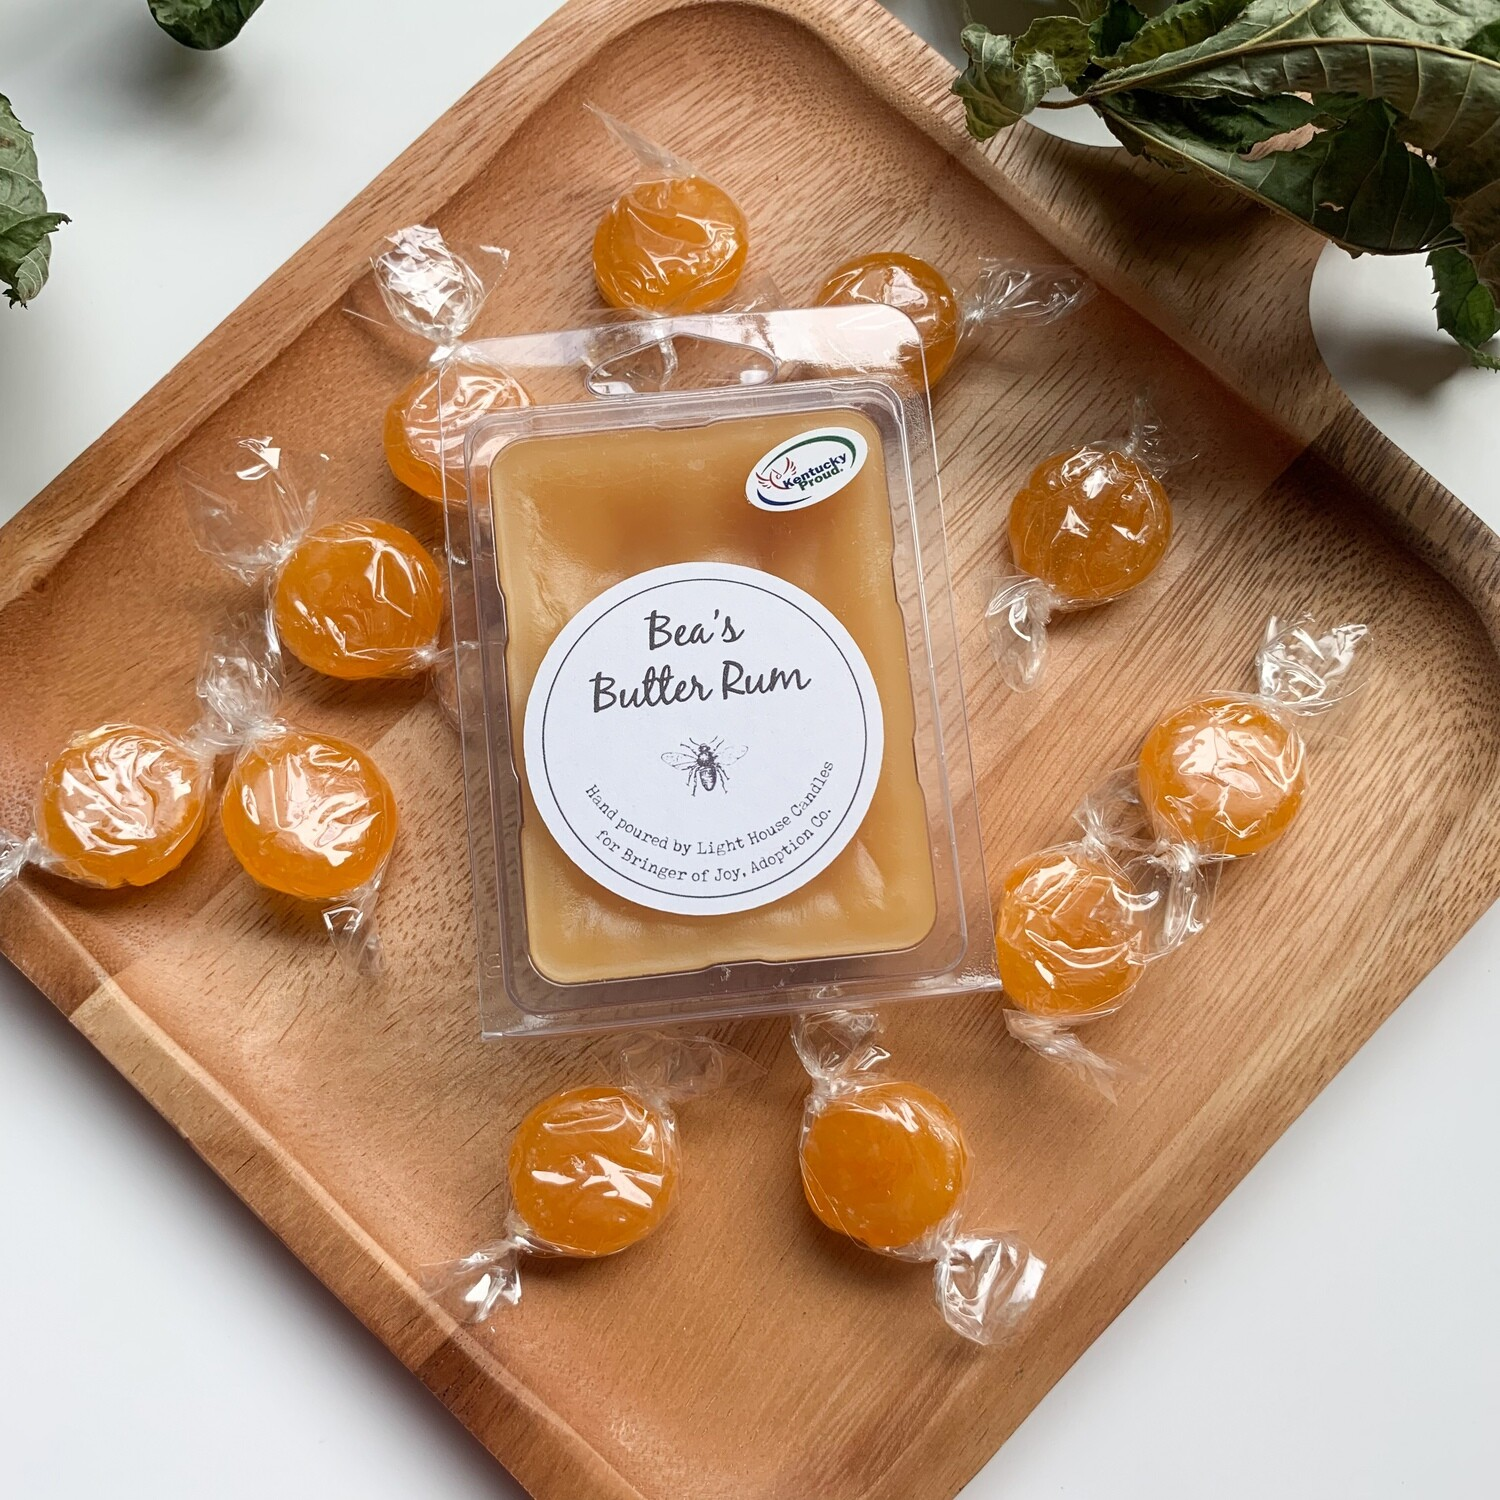 Bea's Butter Rum Wax Melts